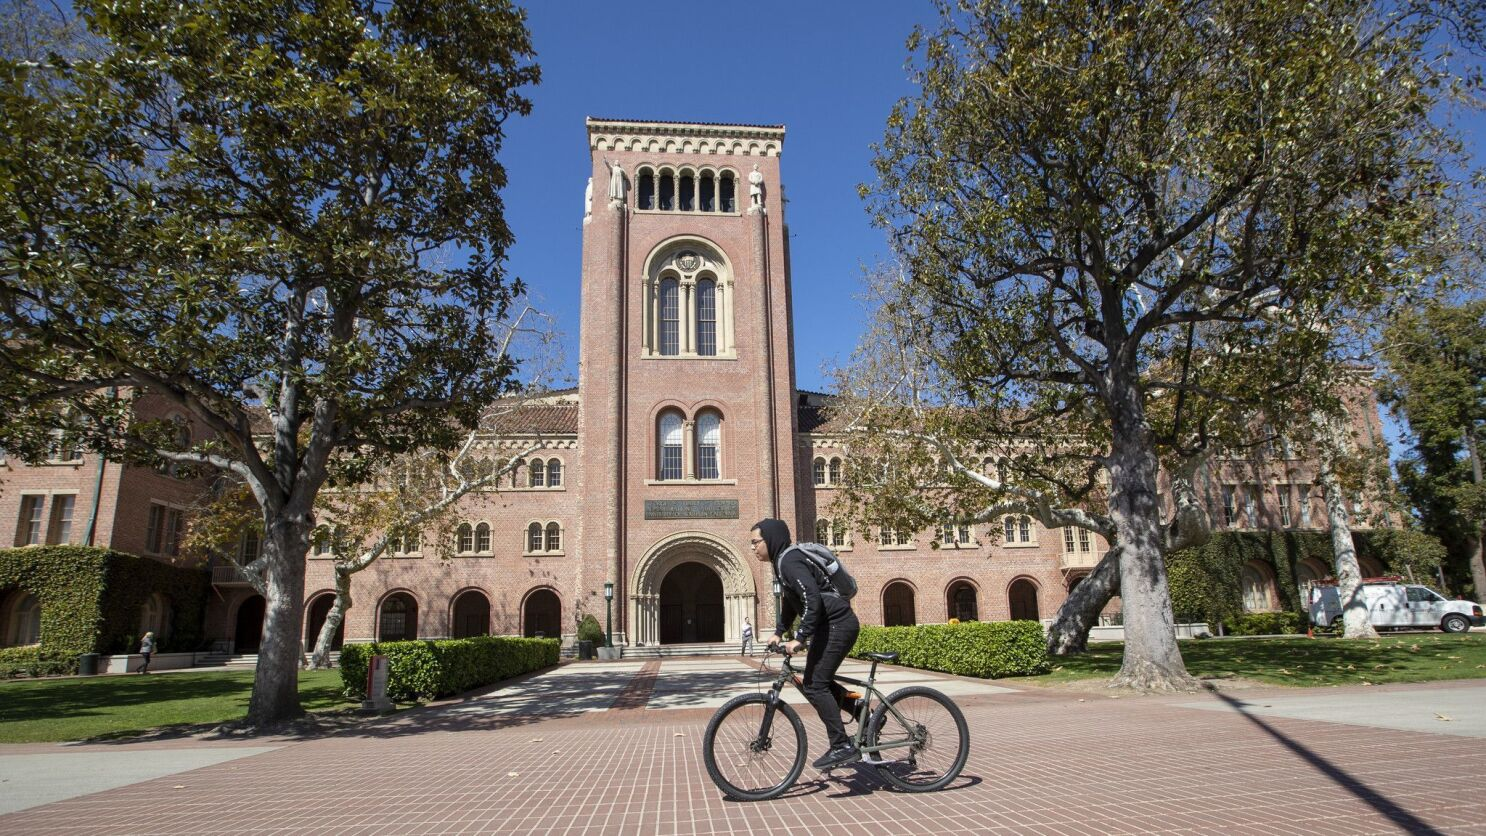 There's a loneliness crisis on college campuses - Los Angeles Times